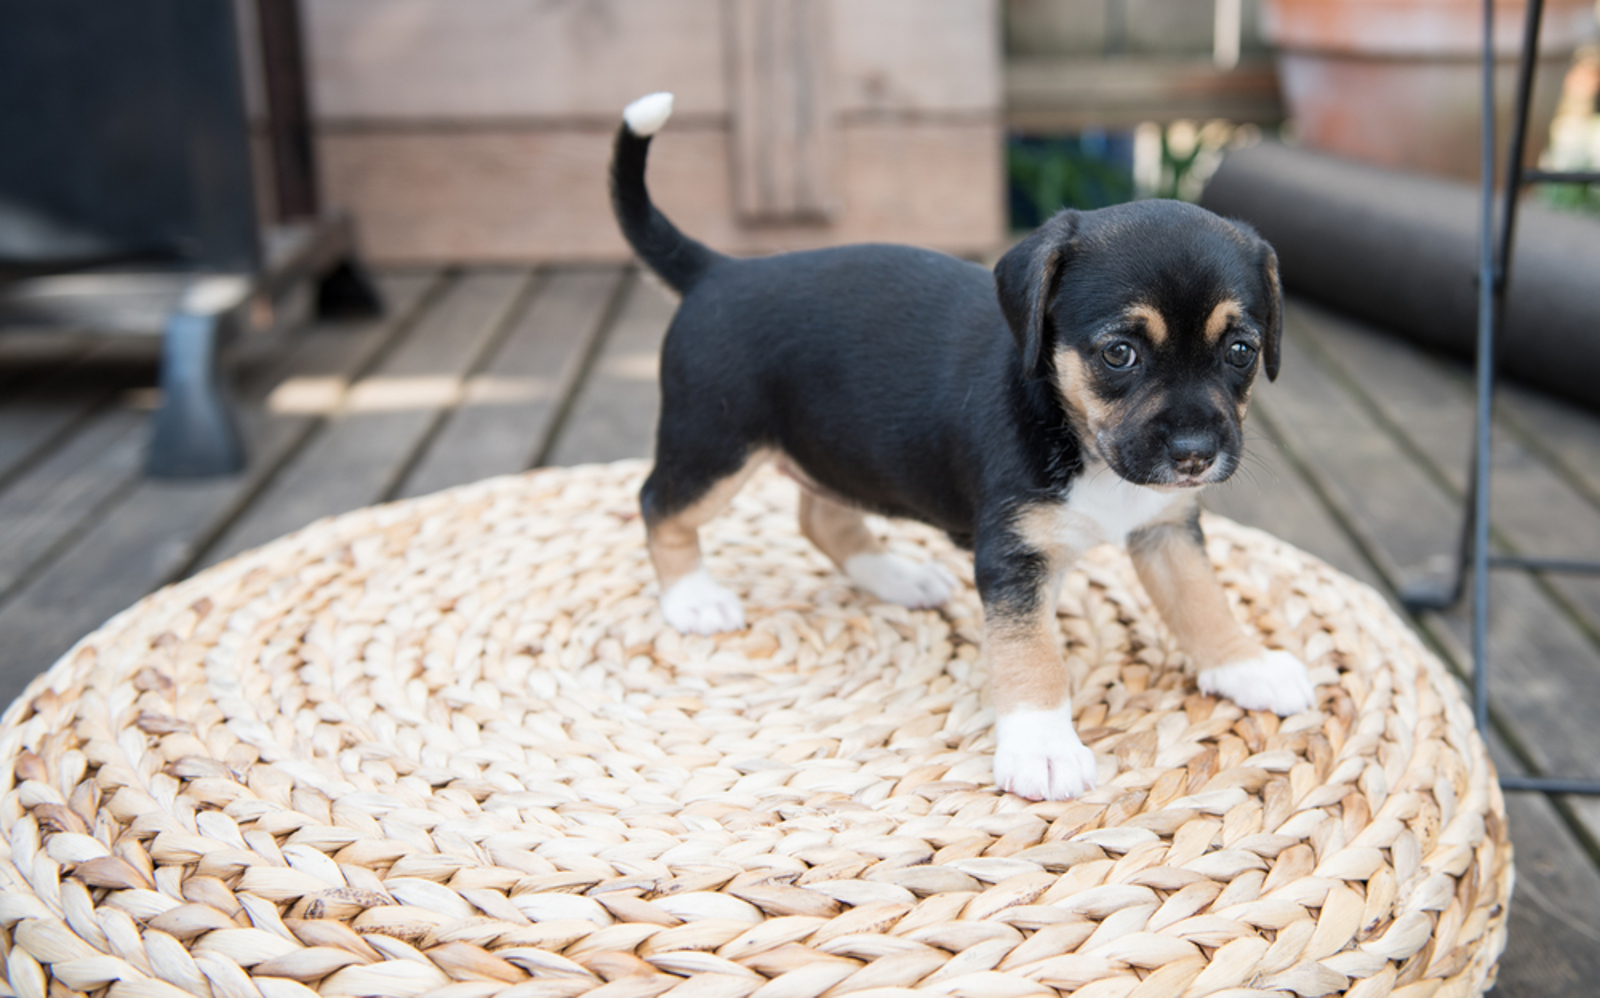 Easy Tips to Pet Proof Your Home to Make Sure All Your Furry Friends Stay Safe